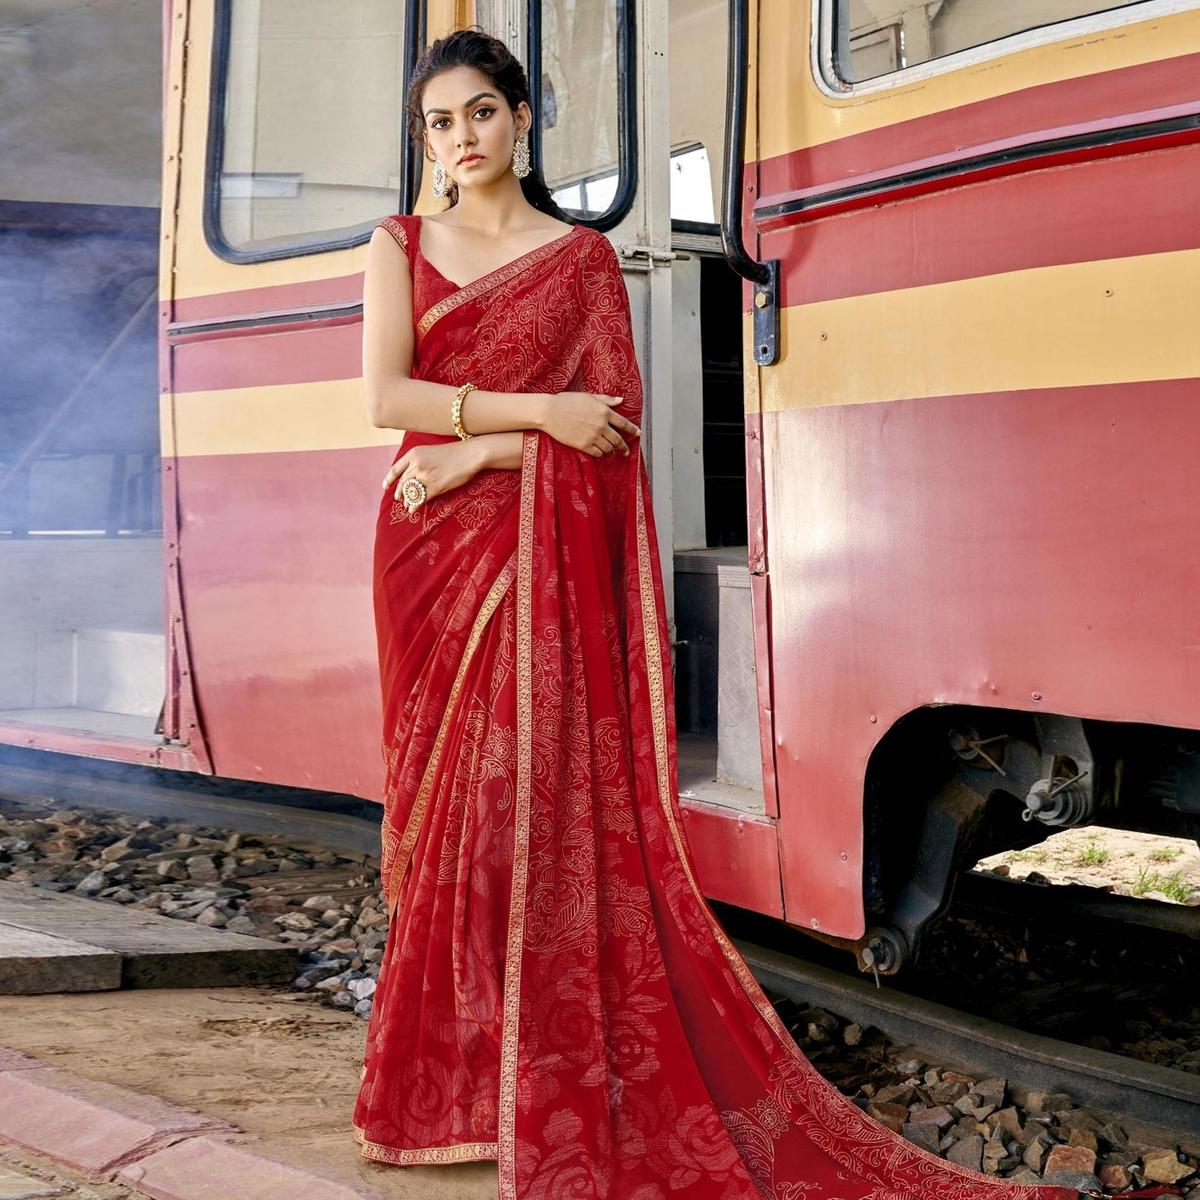 Triveni Red Colored Georgette Printed, Sirosaki Stone Work Saree With Blouse Piece